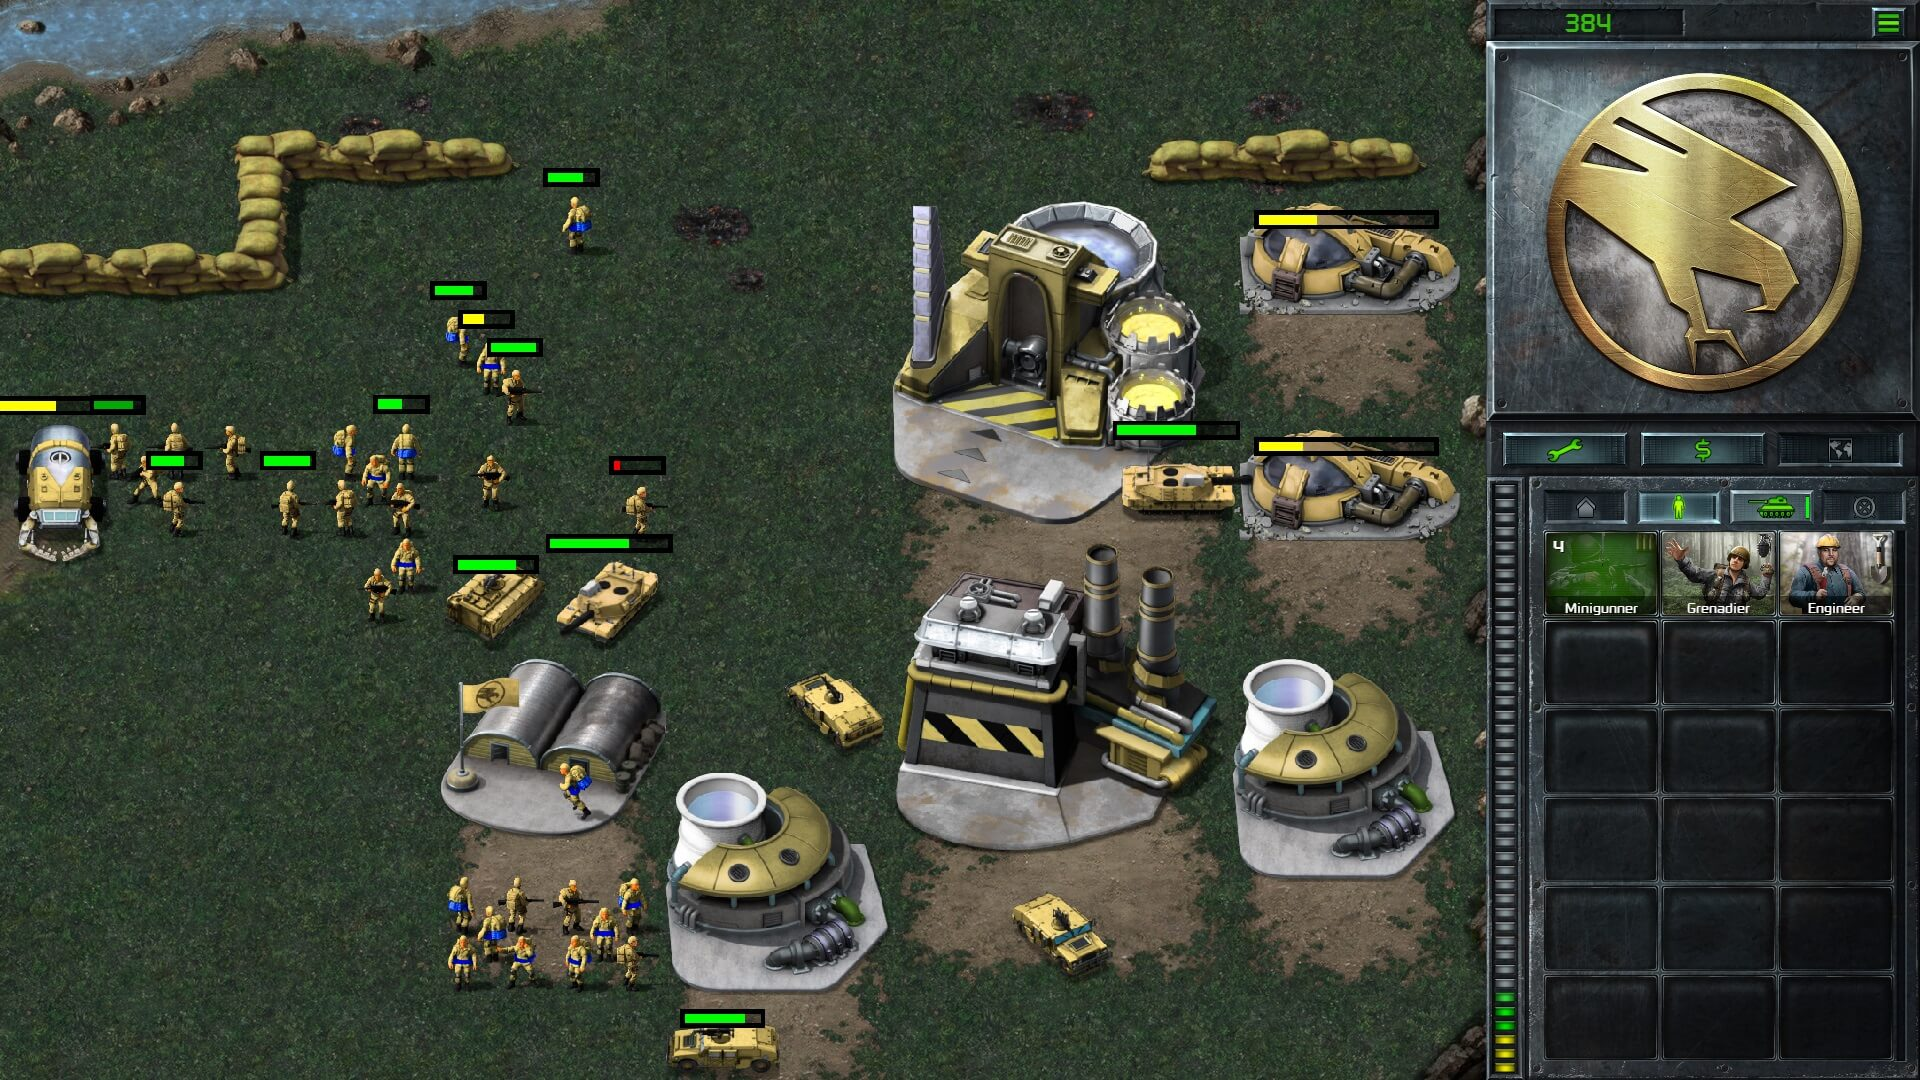 Command And Conquer Remastered Review: An Enhanced Classic